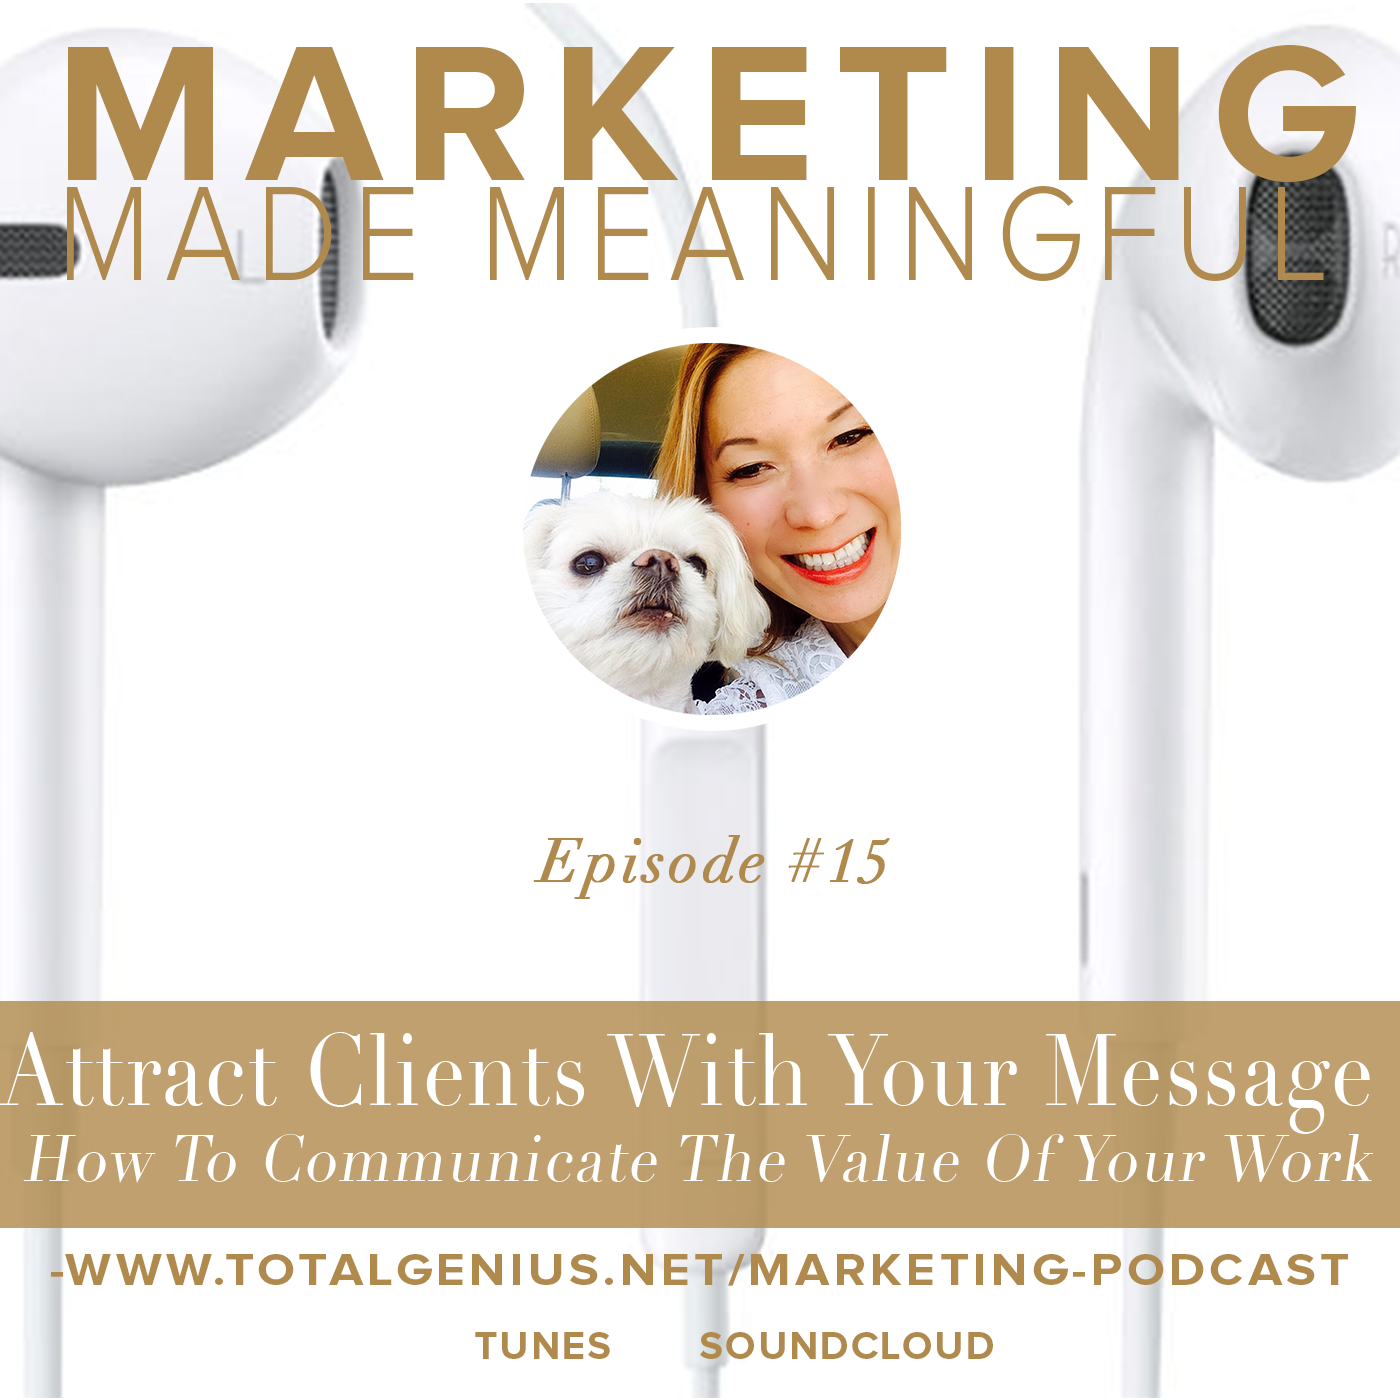 Marketing Made Meaningful Podcast episode #15